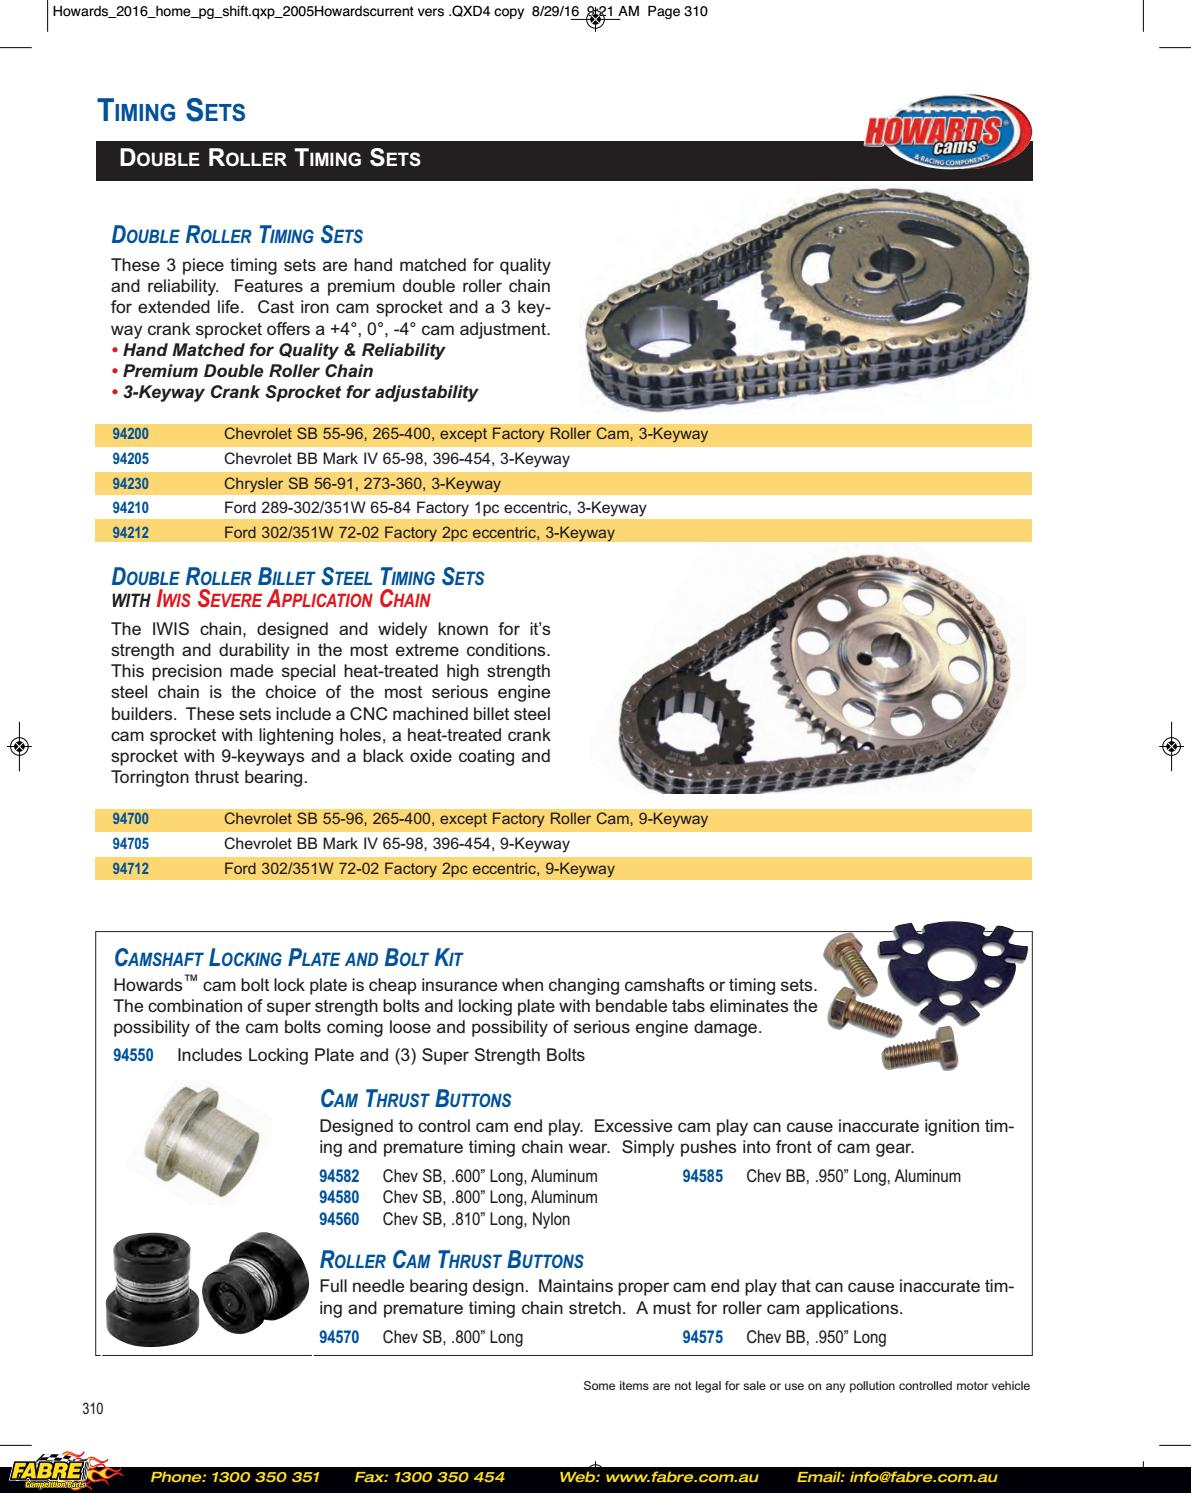 Howards Cams 2016-2017 Catalog by Fabre Australia - issuu